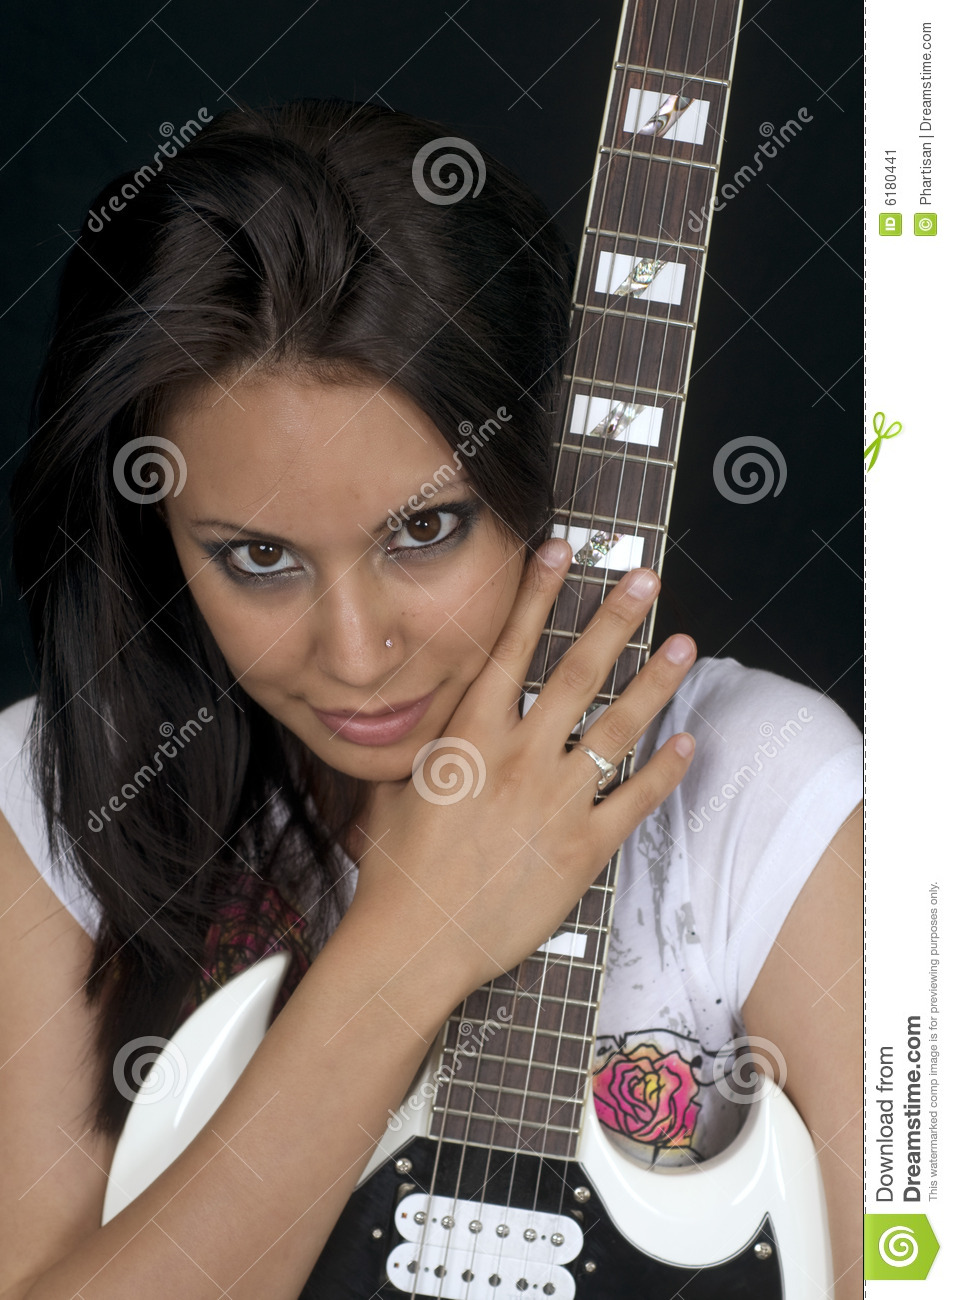 learning to play the guitar stock image image of learn play 6180441. Black Bedroom Furniture Sets. Home Design Ideas